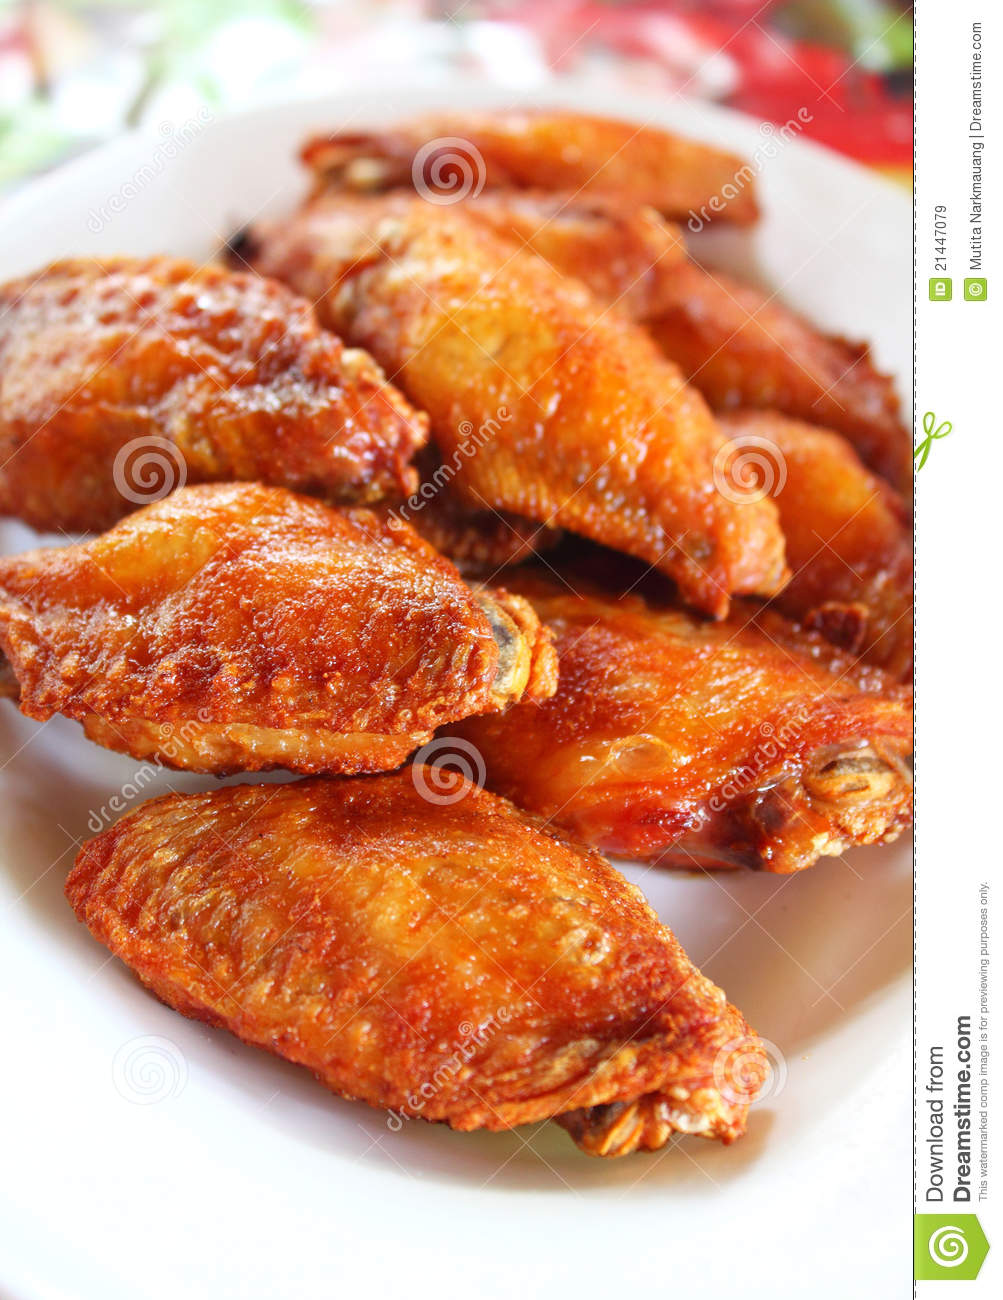 Thai Fried Chicken Royalty Free Stock Images - Image: 21447079